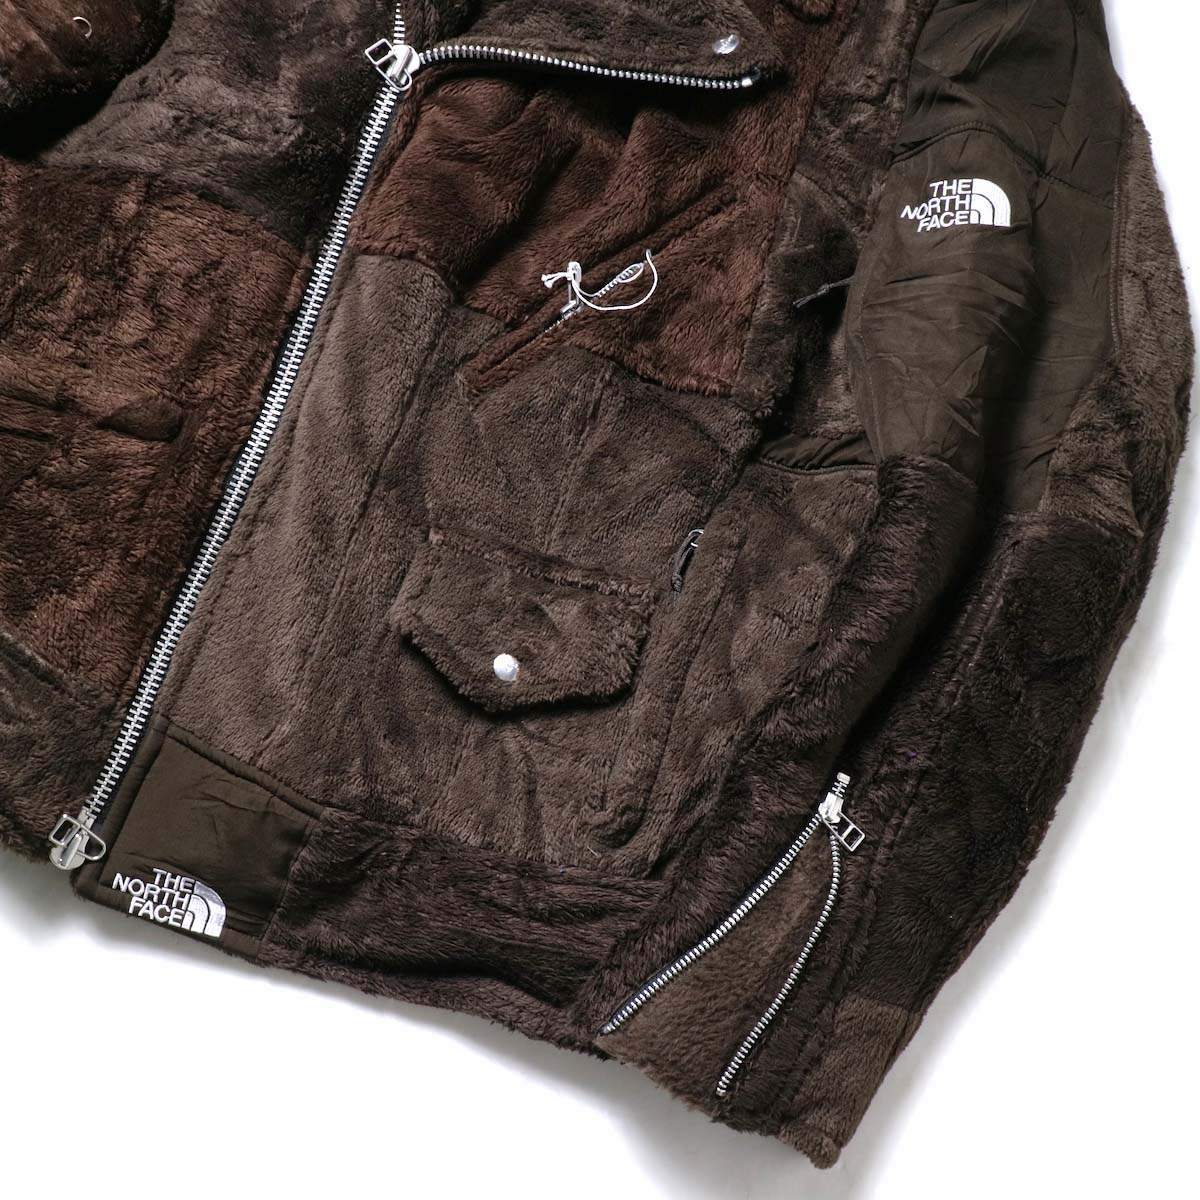 OLD PARK / Oversized Riders Jacket -Outdoor (Brown)袖、裾②